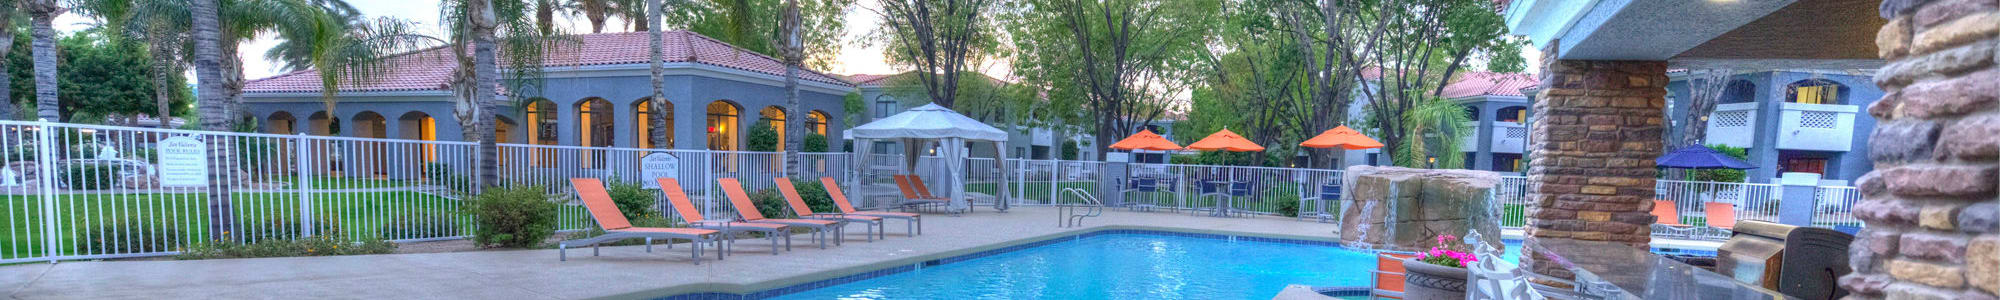 Learn more about our apartment homes for rent at San Valiente Luxury Apartment Homes in Phoenix